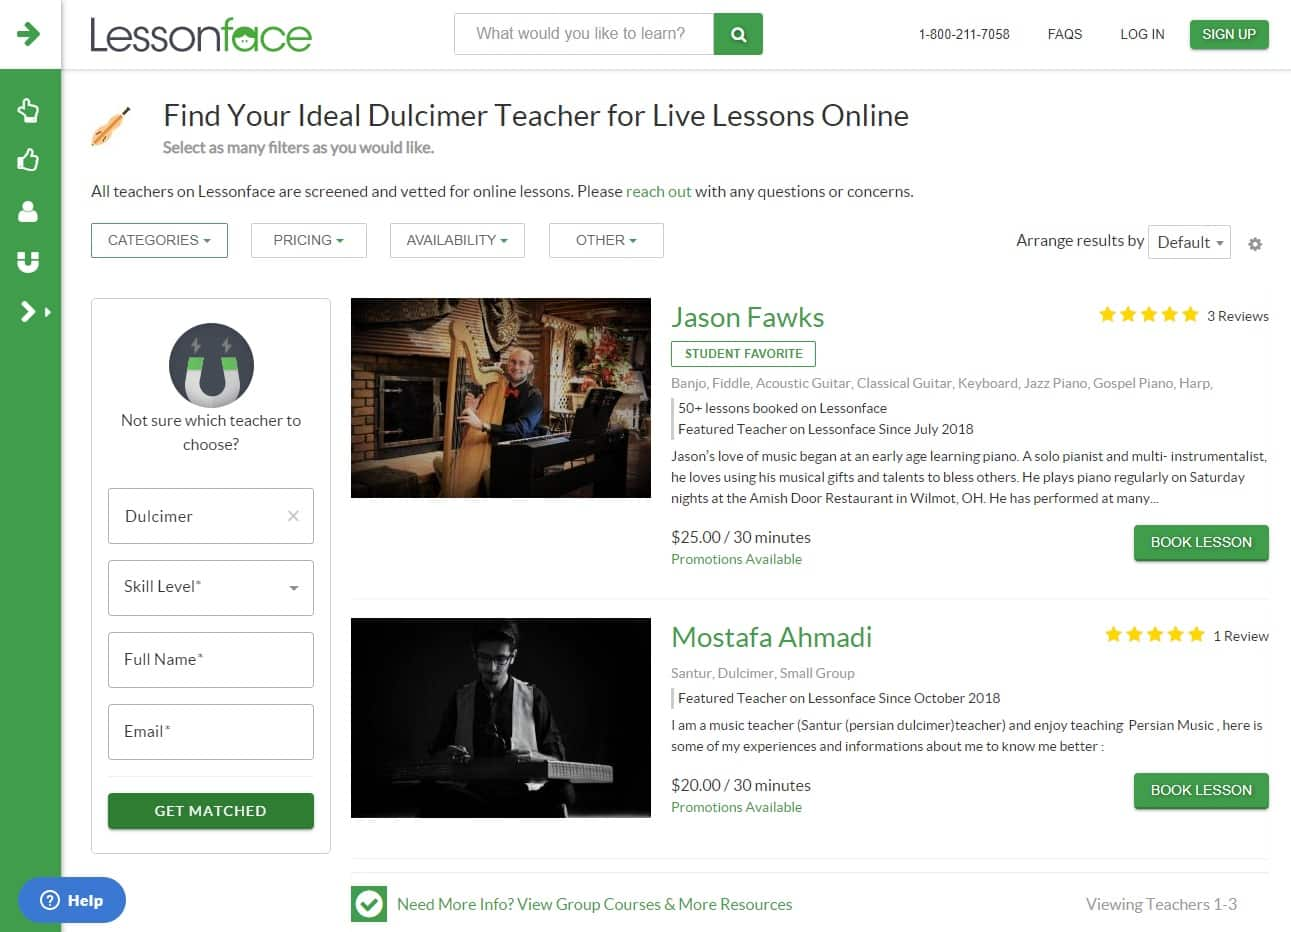 lessonface learn dulcimer lessons online